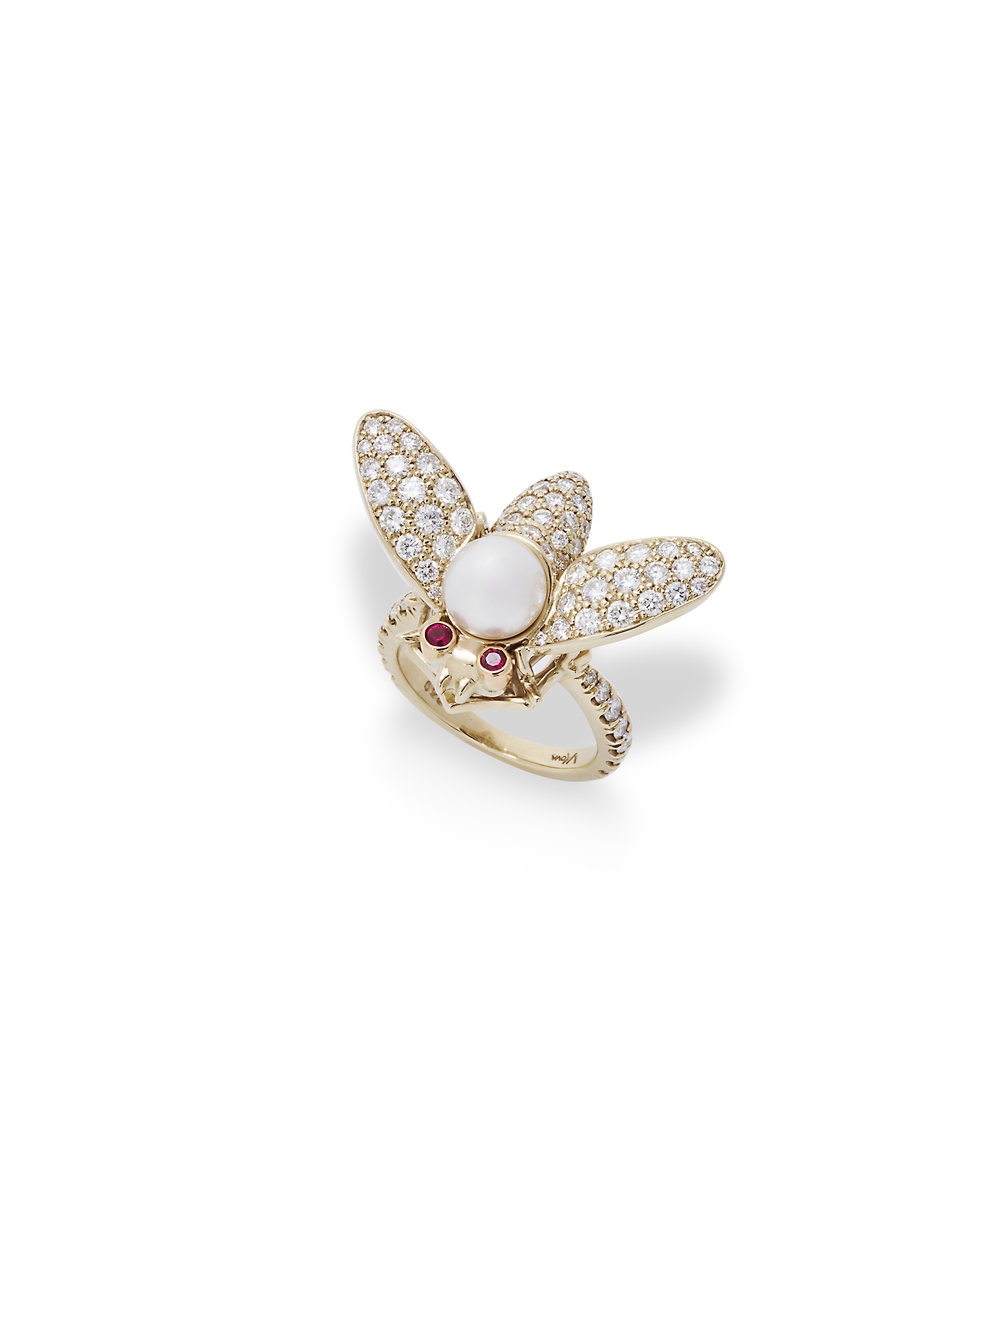 VALENTINA BUG RING   18 K GOLD 2.0 CT OF DIAMONDS .16 CT OF RUBY      Contact for inquiry